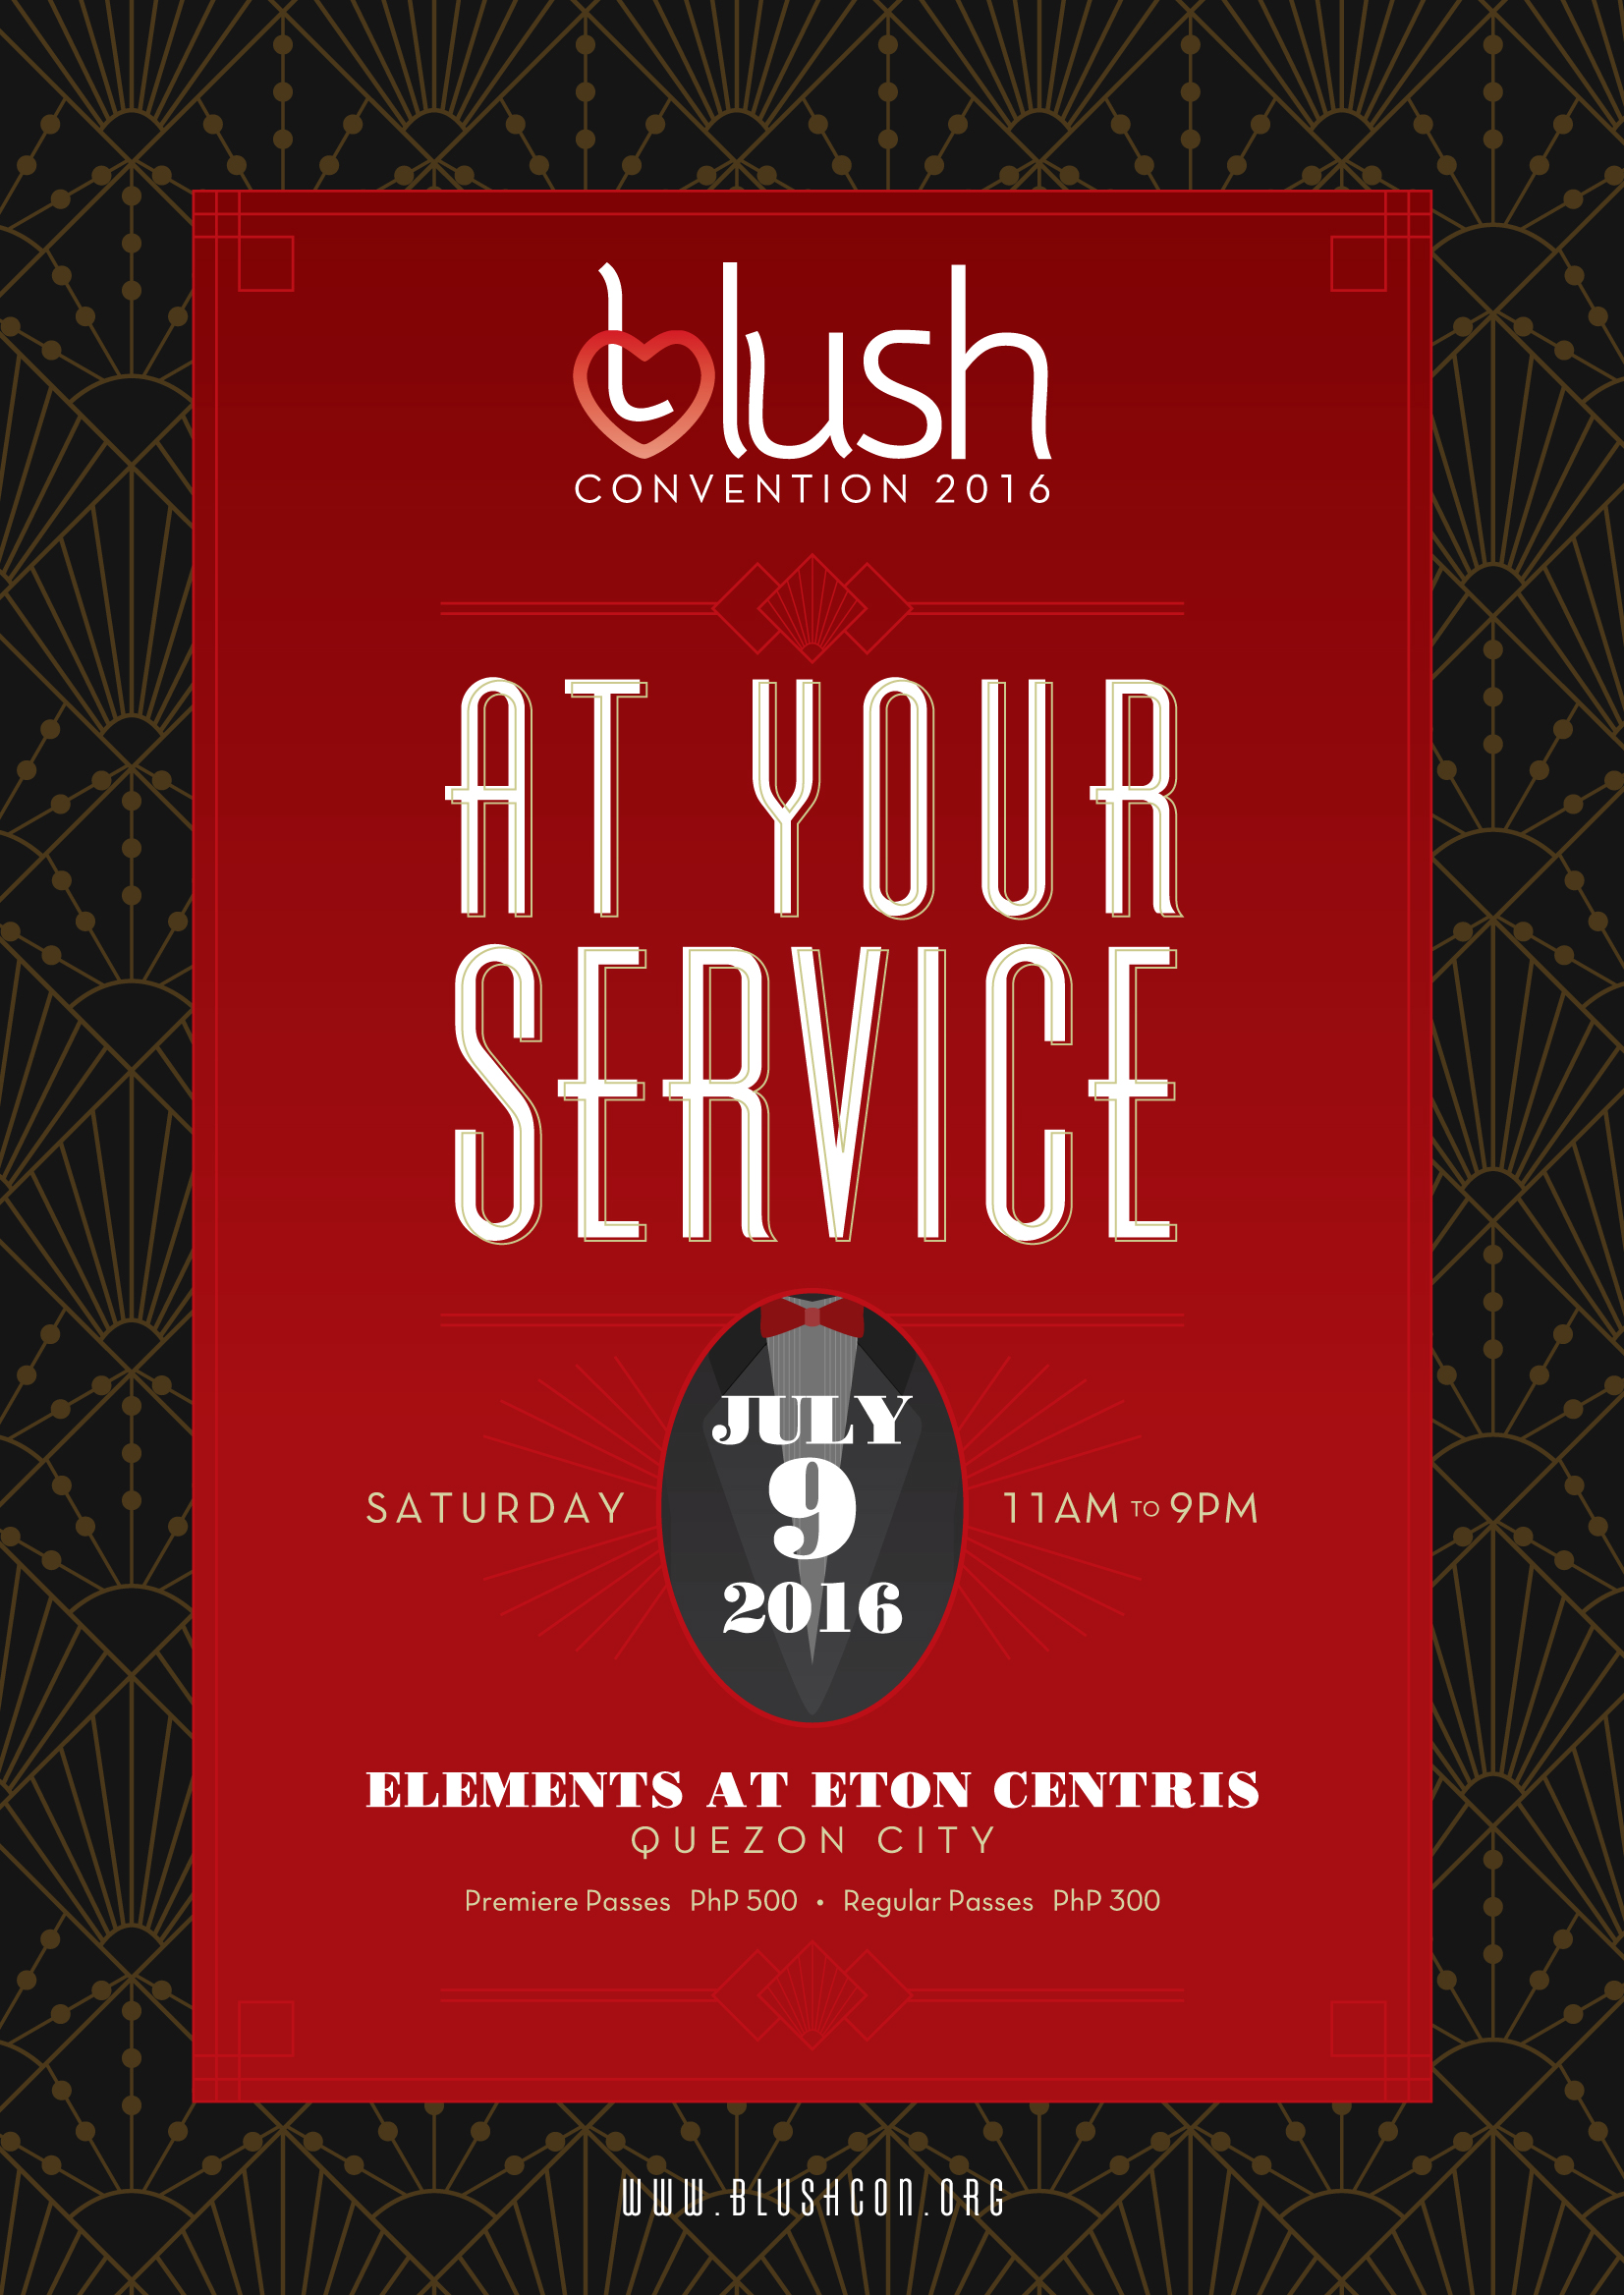 BLush Convention 2016: At Your Service